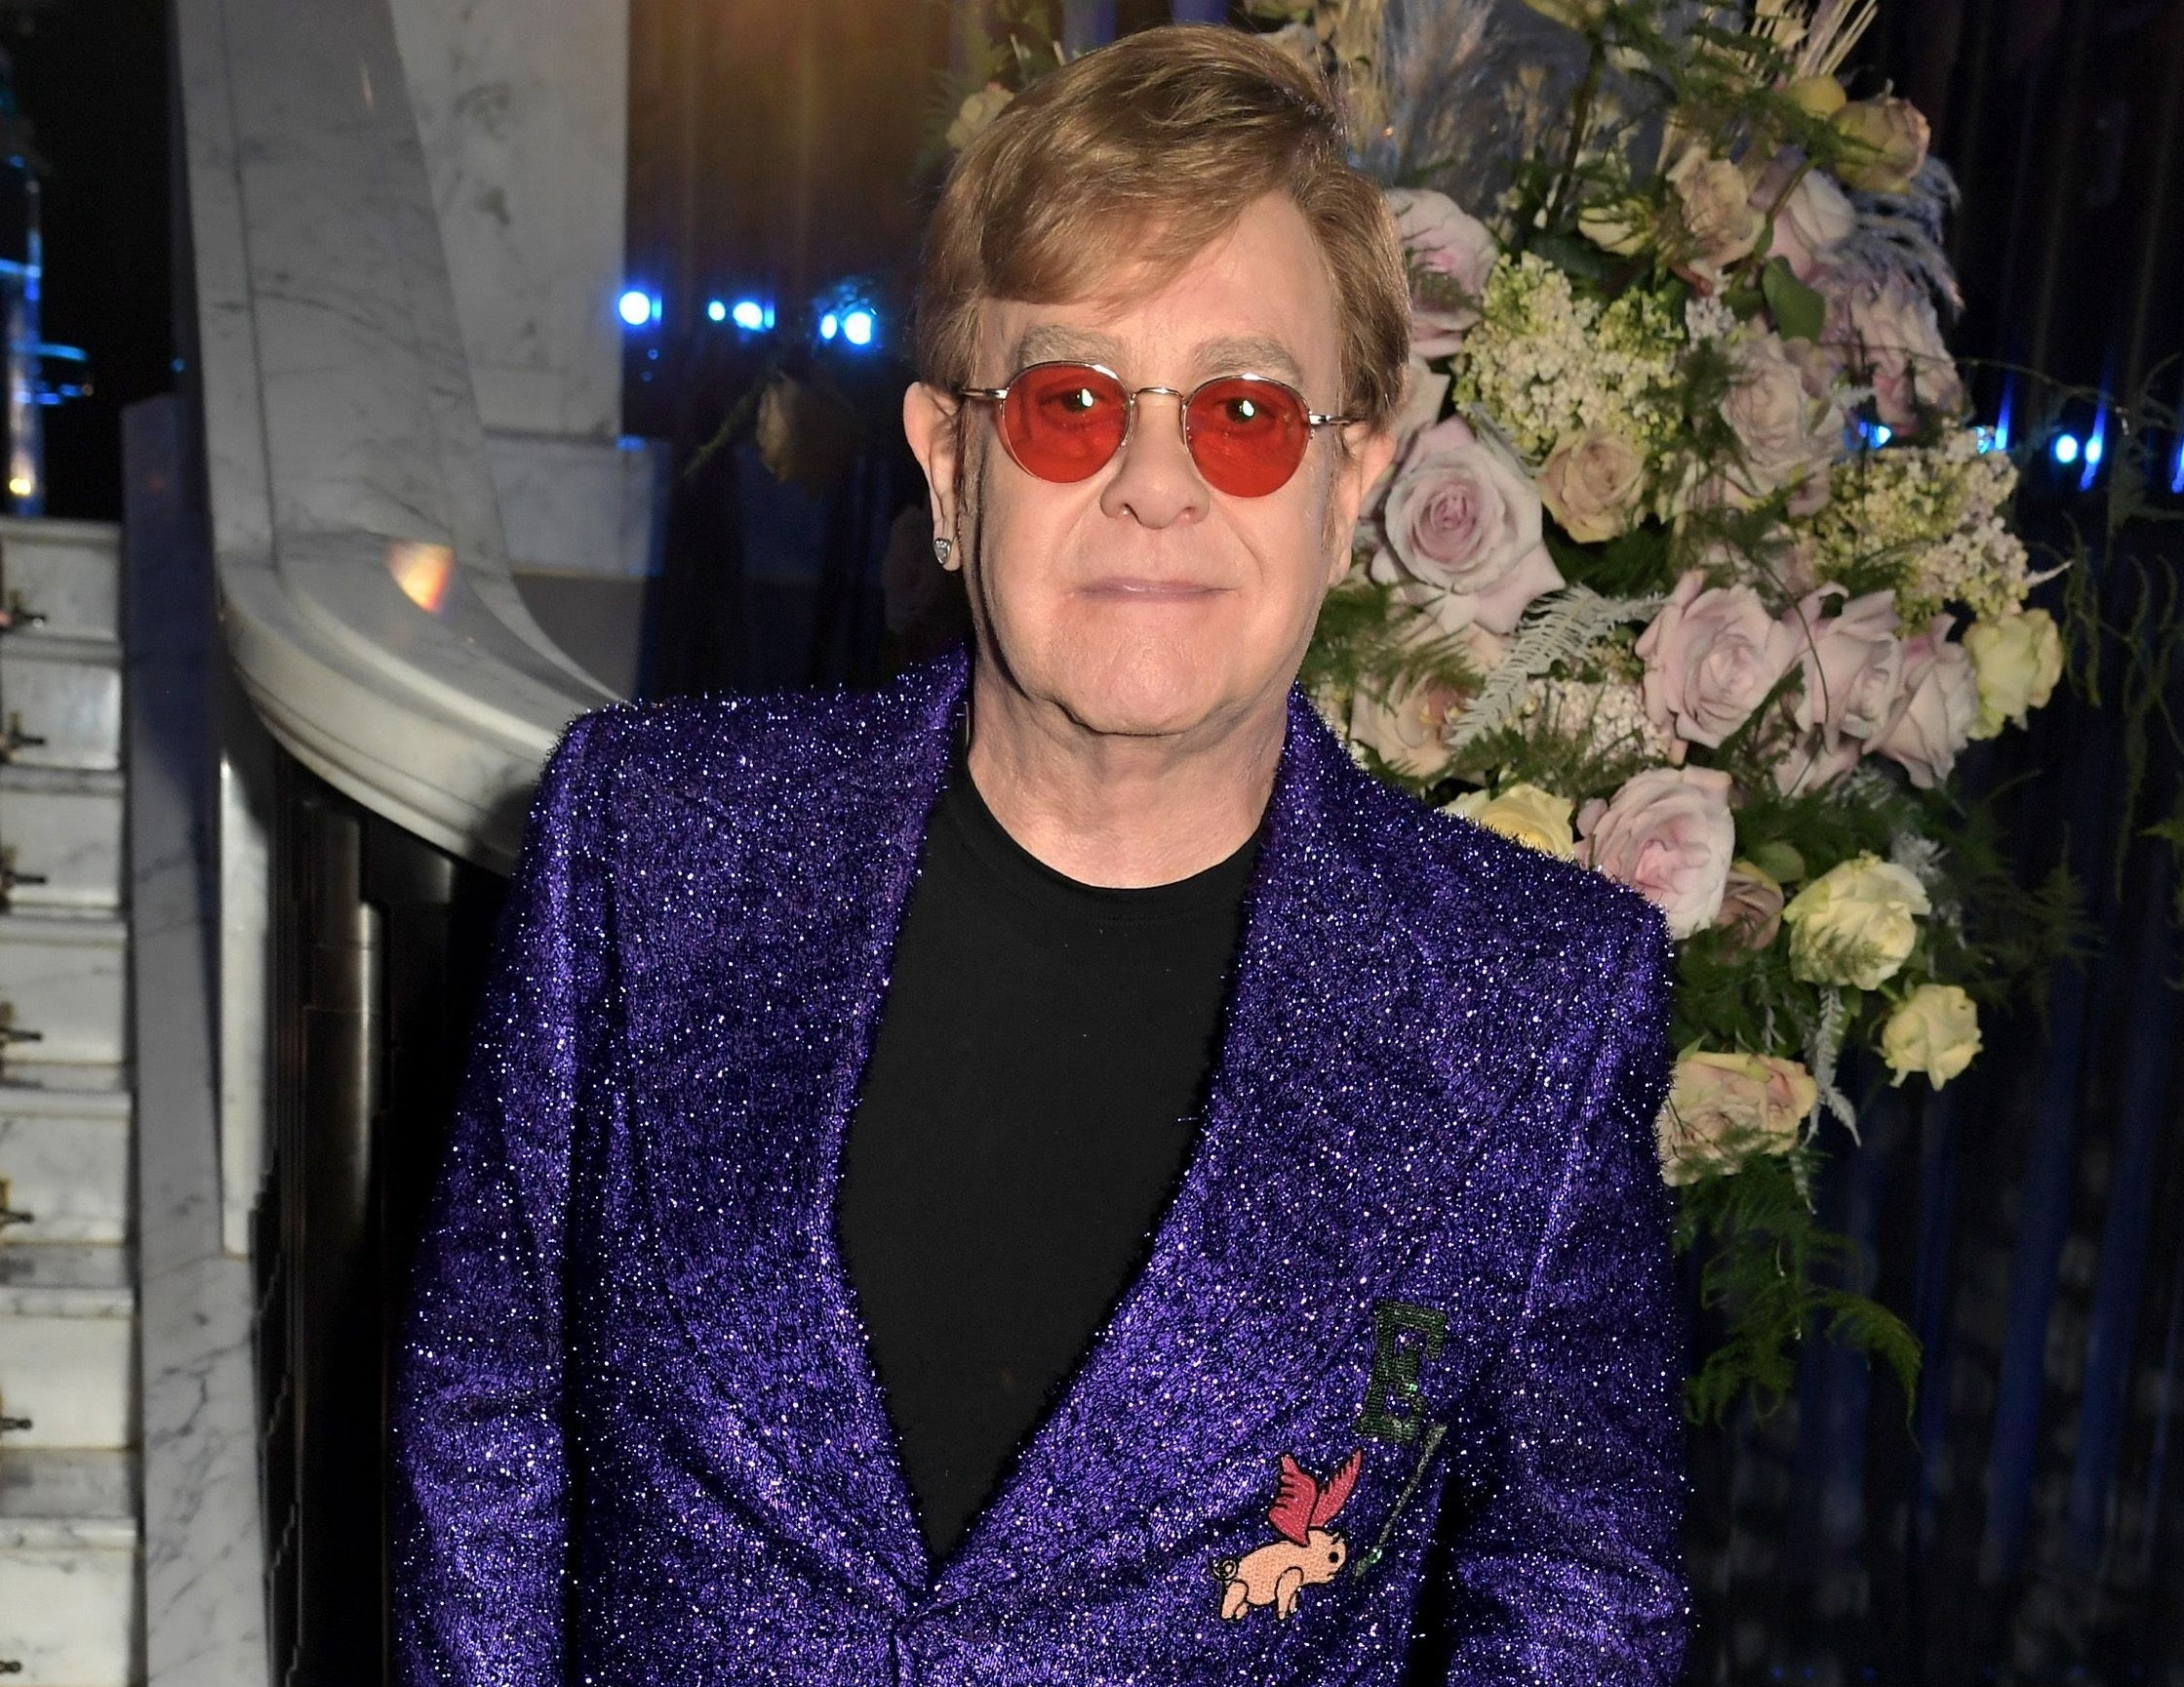 Elton wears a purple sparkly blazer and red tinted glasses